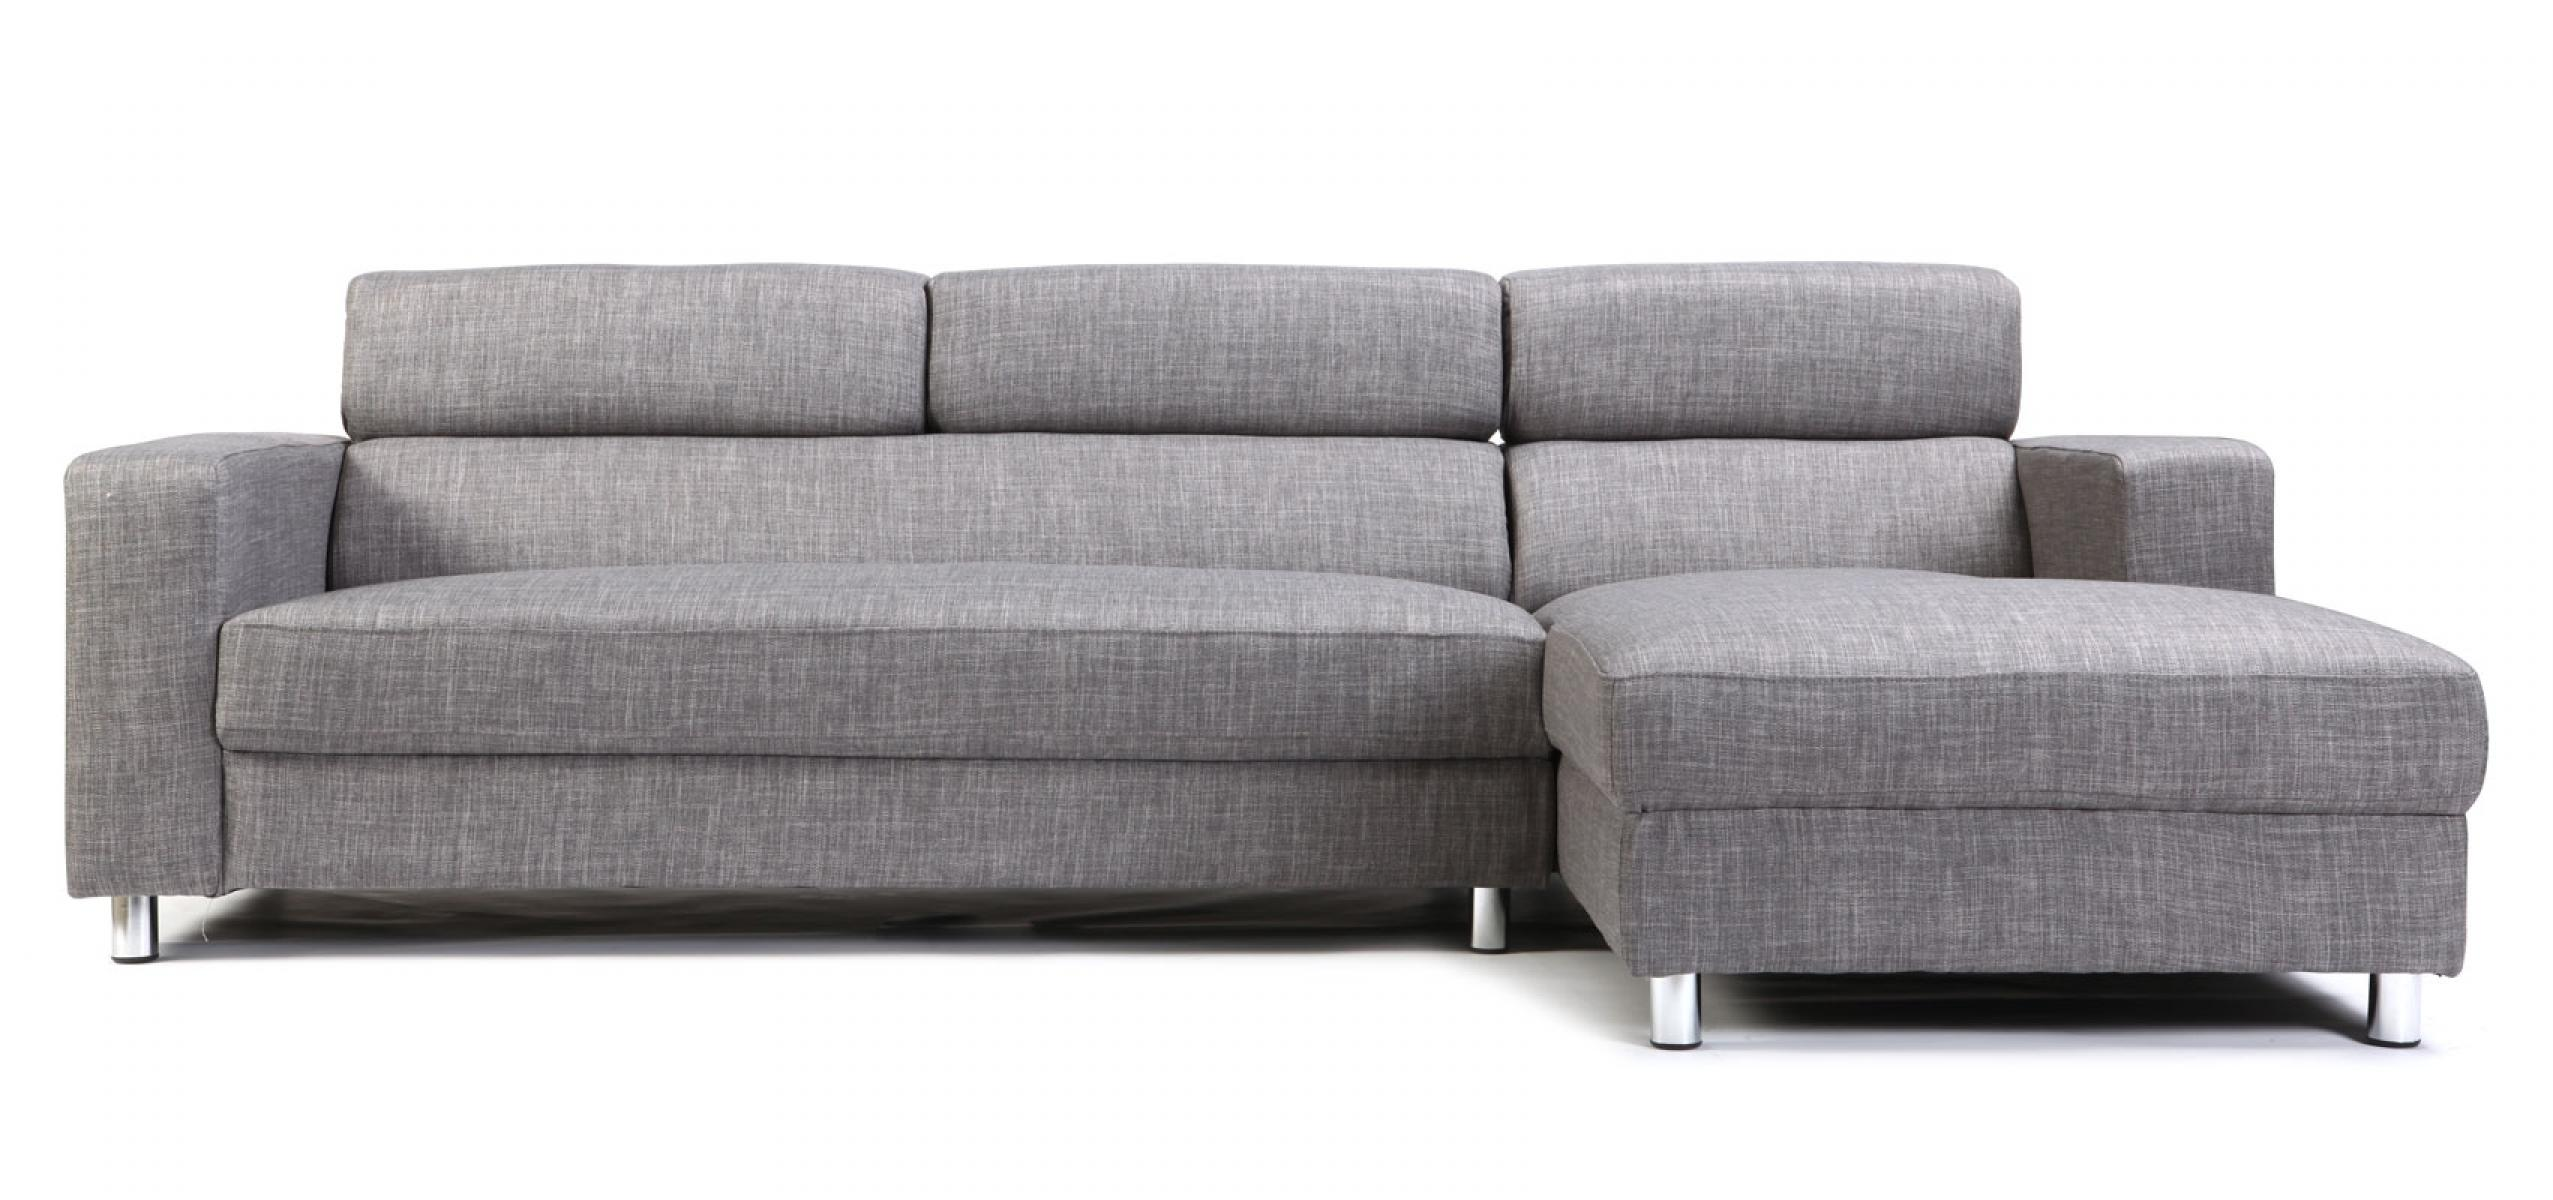 Canap convertible gris royal sofa id e de canap et for Site de canape